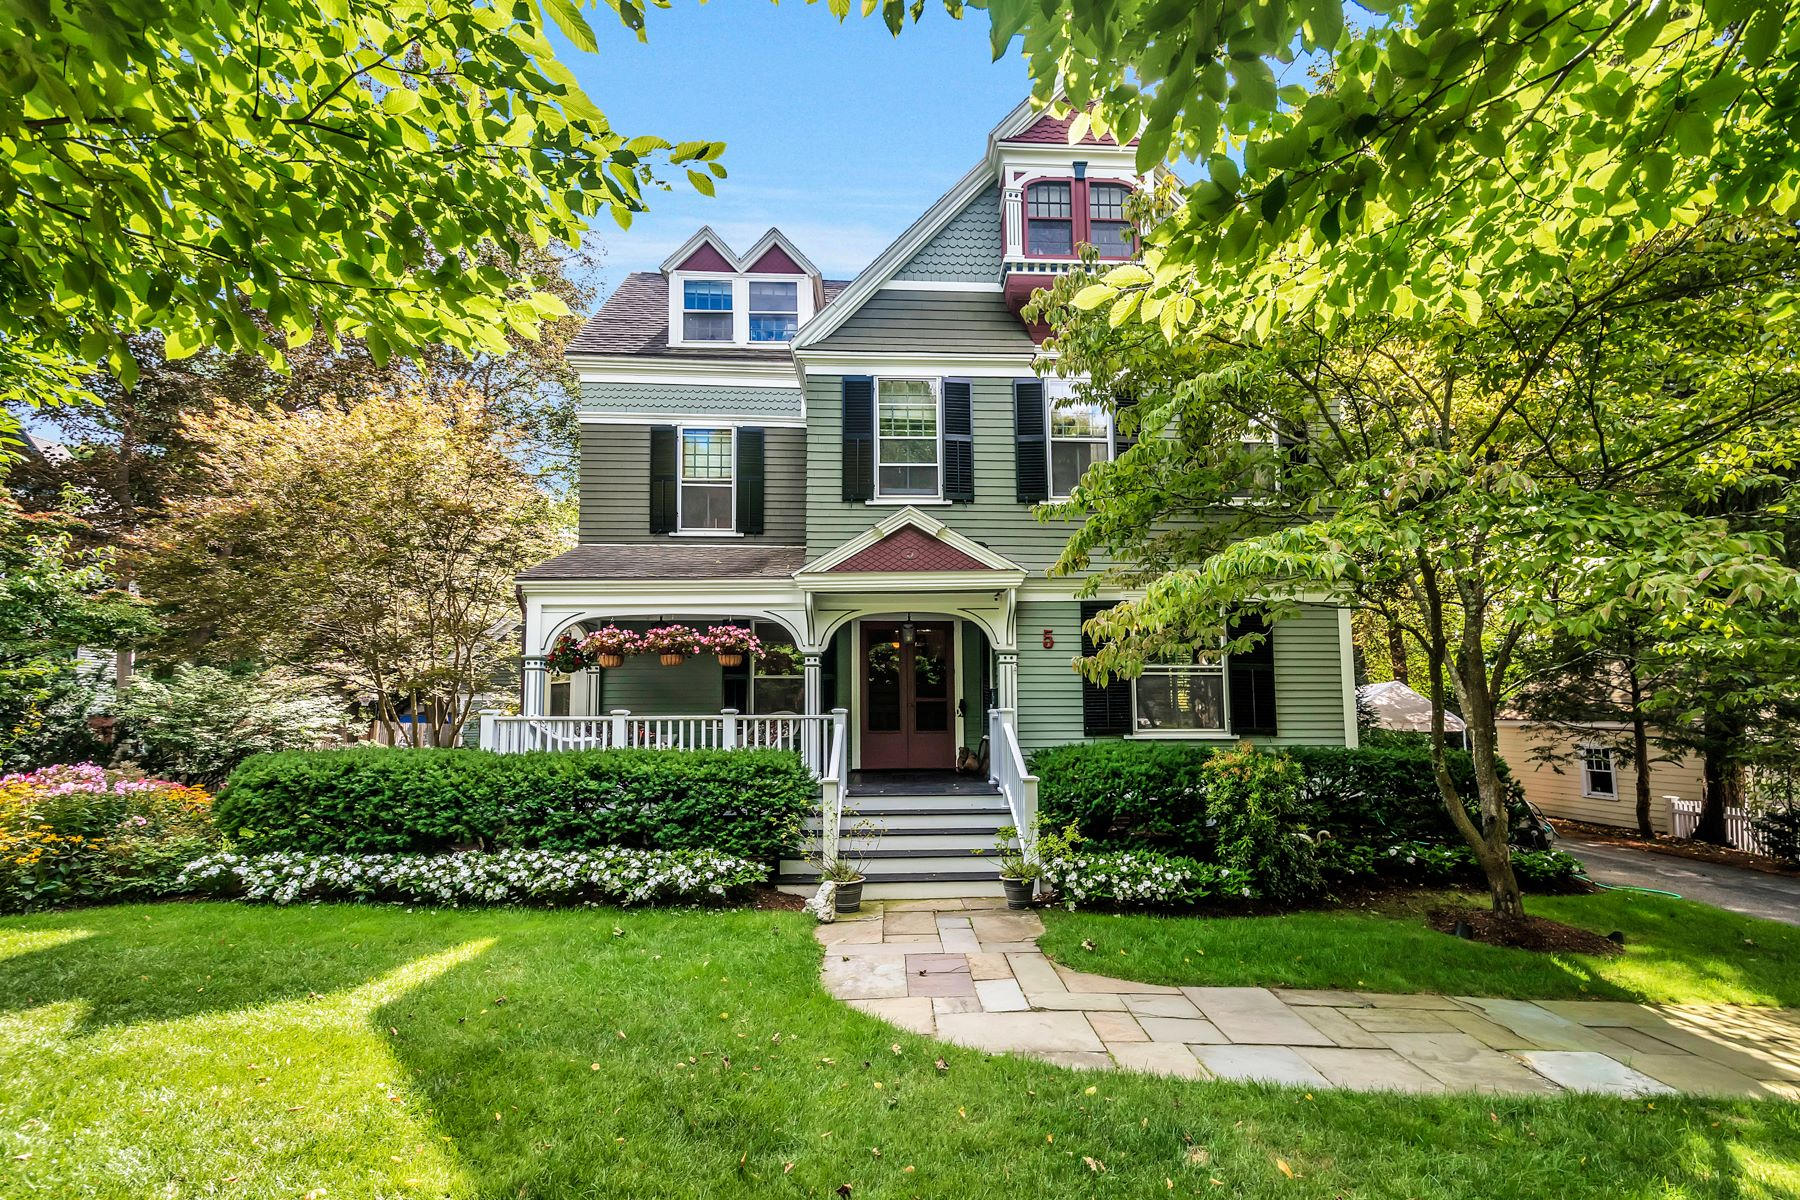 Single Family Home for Sale at Stunning Winchester Colonial with Carriage House 5 Winthrop St Winchester, Massachusetts 01890 United States